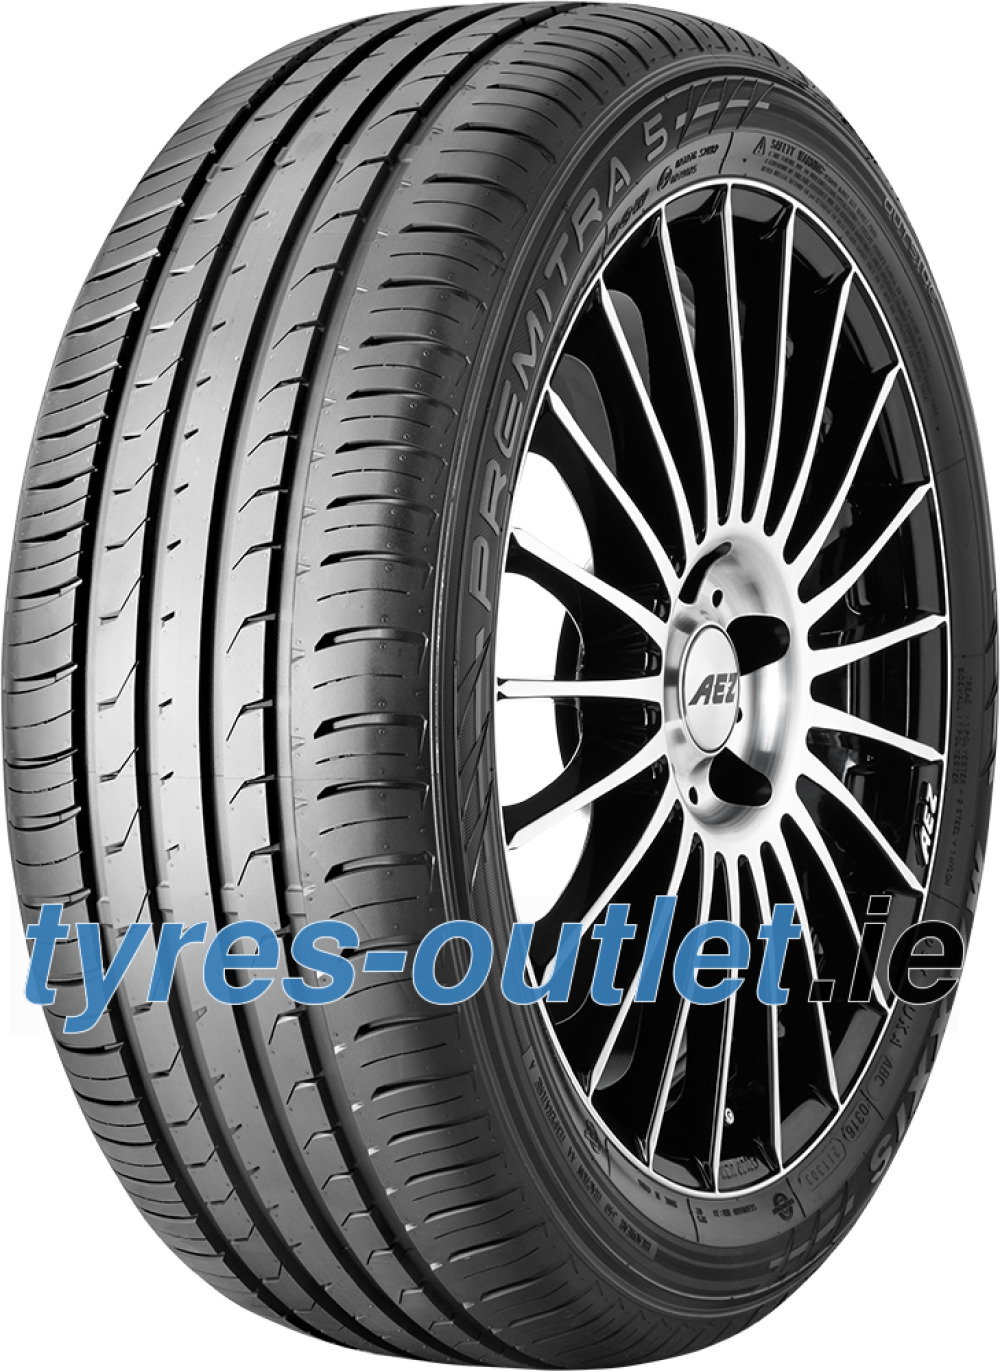 Maxxis Premitra 5 ( 235/45 ZR17 97W with rim protection ridge (FSL) )